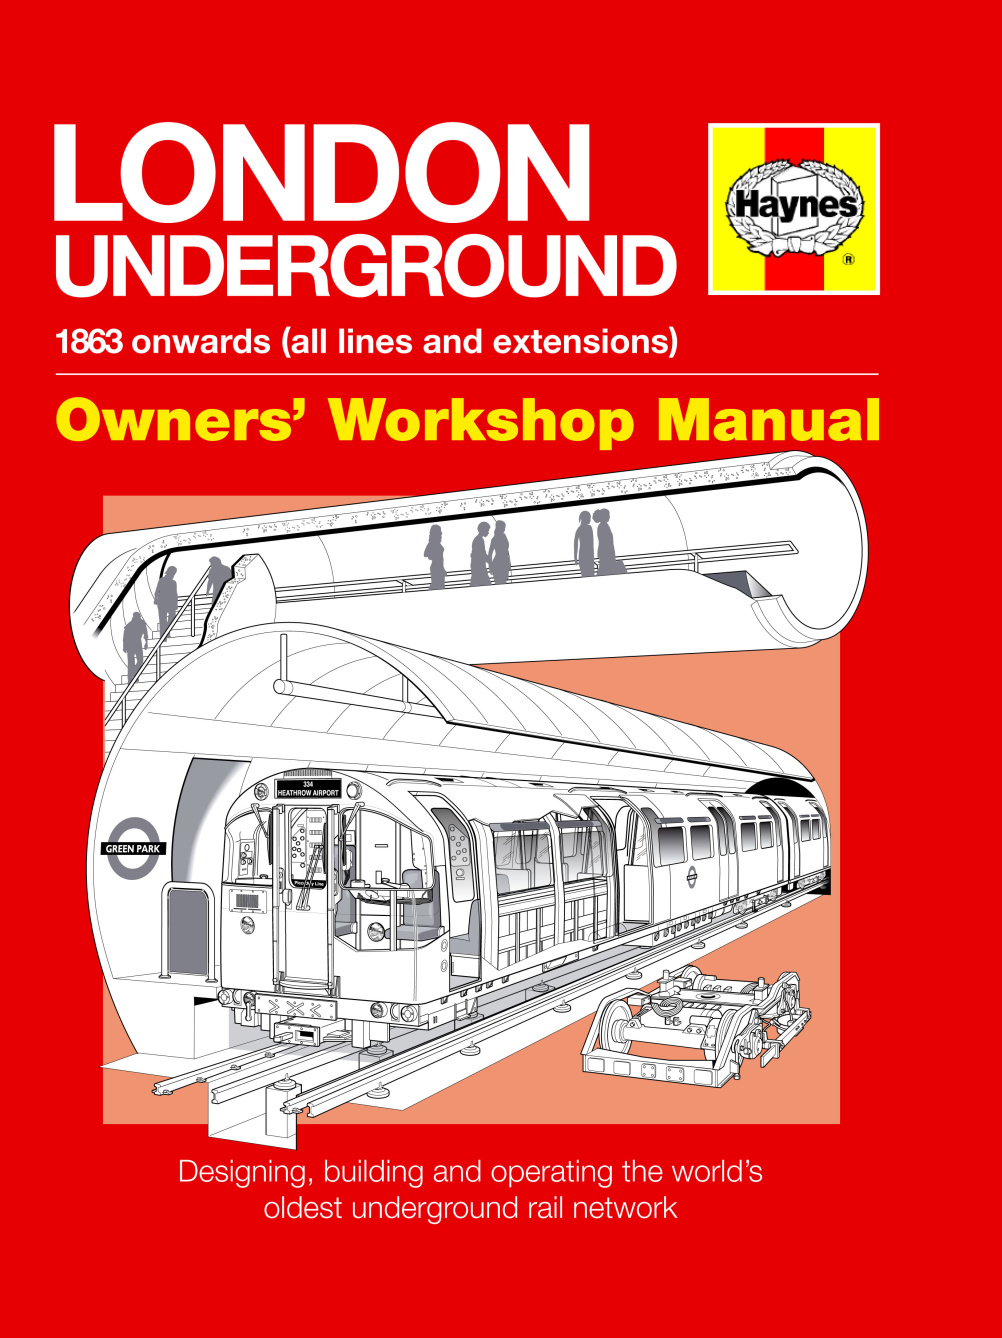 London Underground - Owners' Workshop Manual